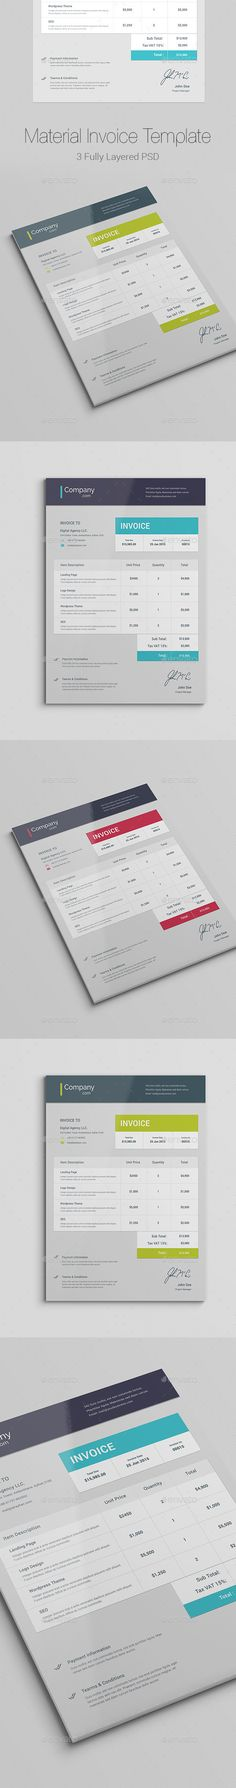 Material Invoice Template #design Download: http://graphicriver.net/item/material-invoice/11809418?ref=ksioks